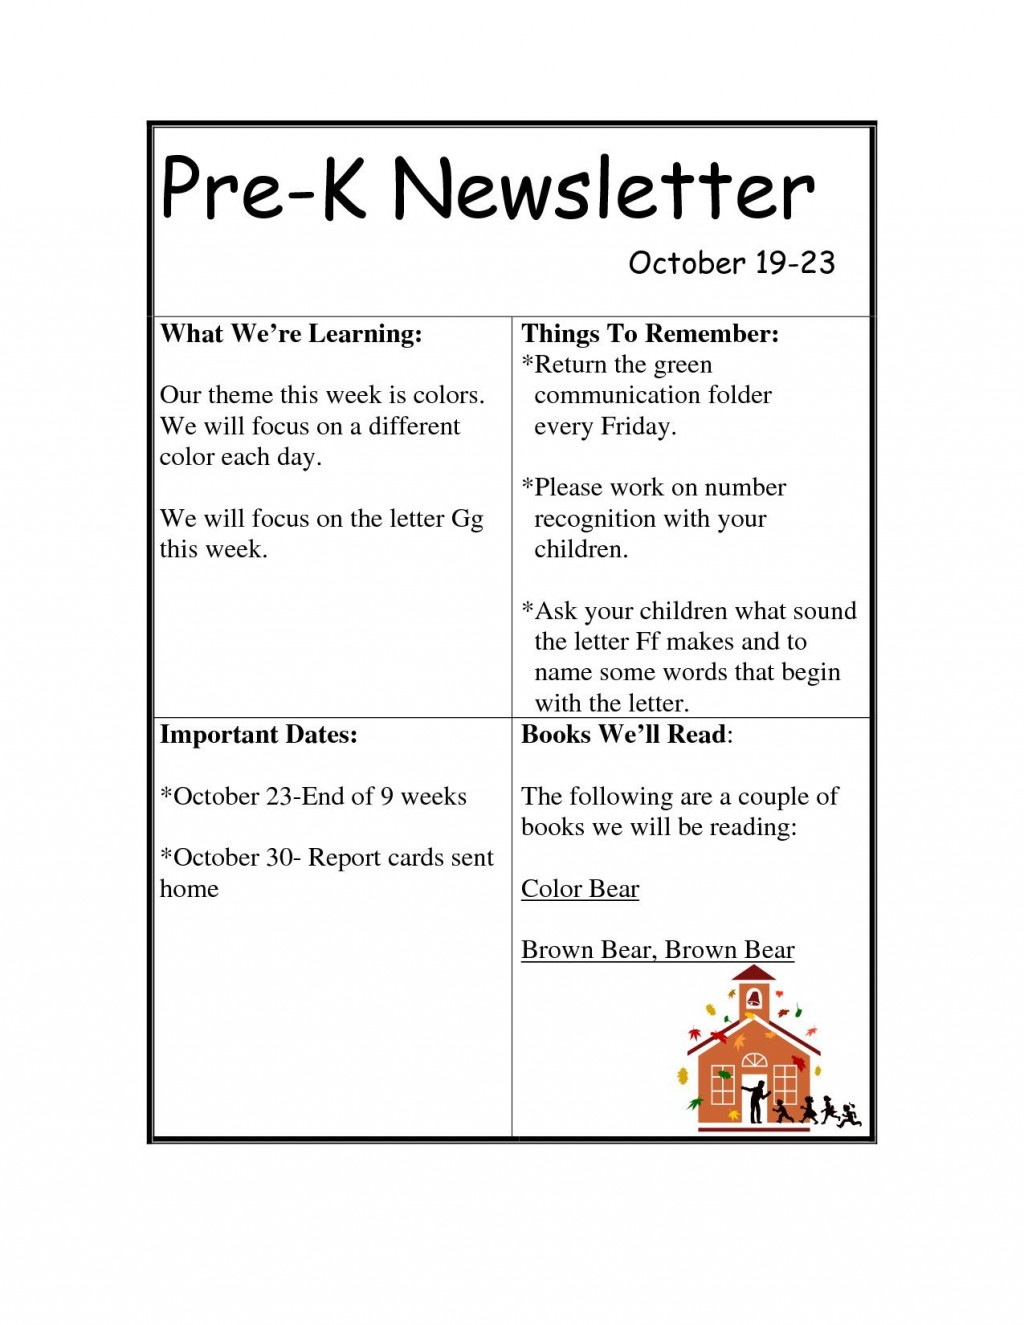 003 Singular Pre K Newsletter Template High Resolution  Templates Free Printable ClassroomLarge